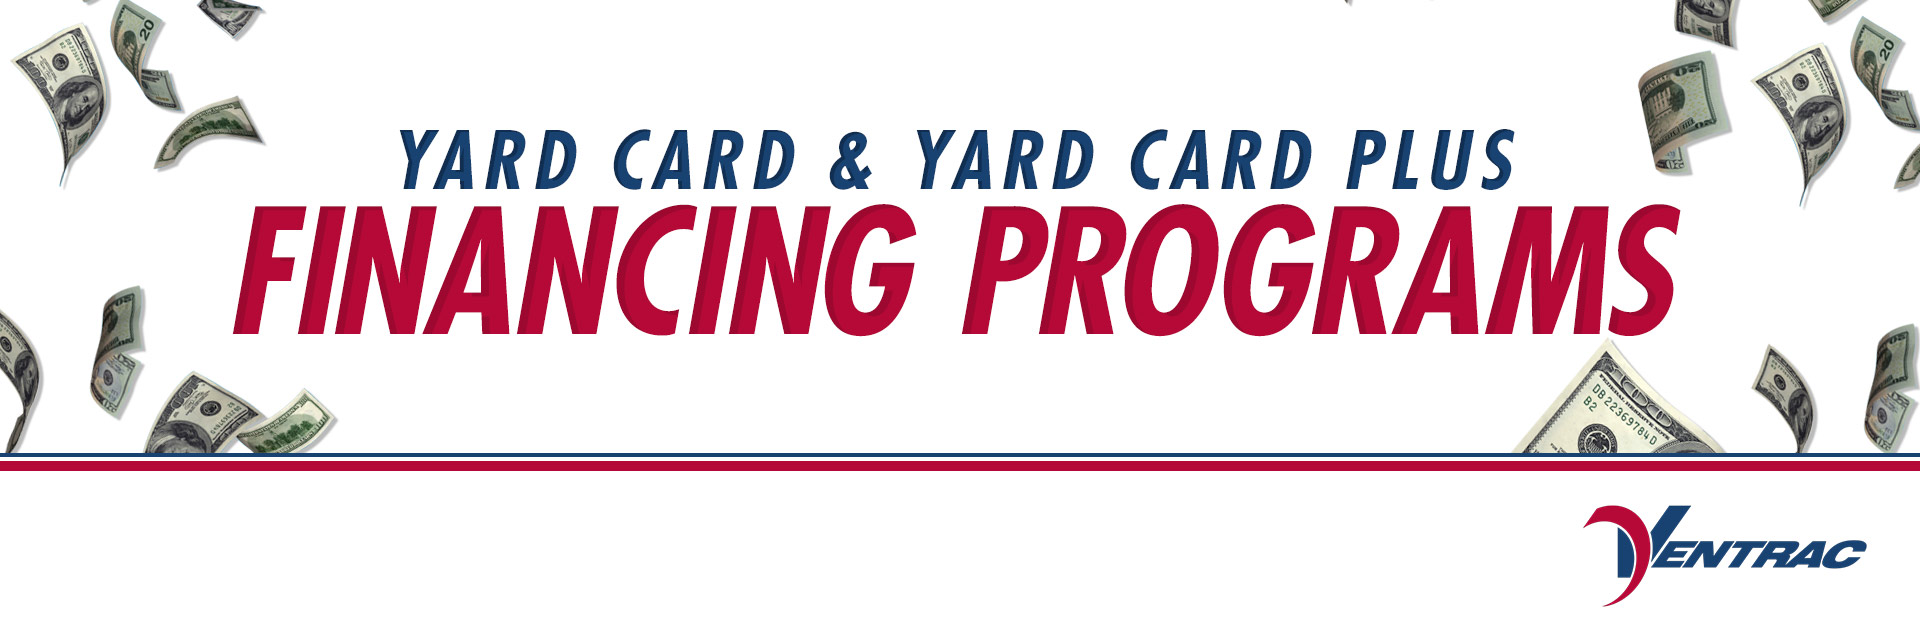 Ventrac: Yard Card and Yard Card Plus Financing Programs